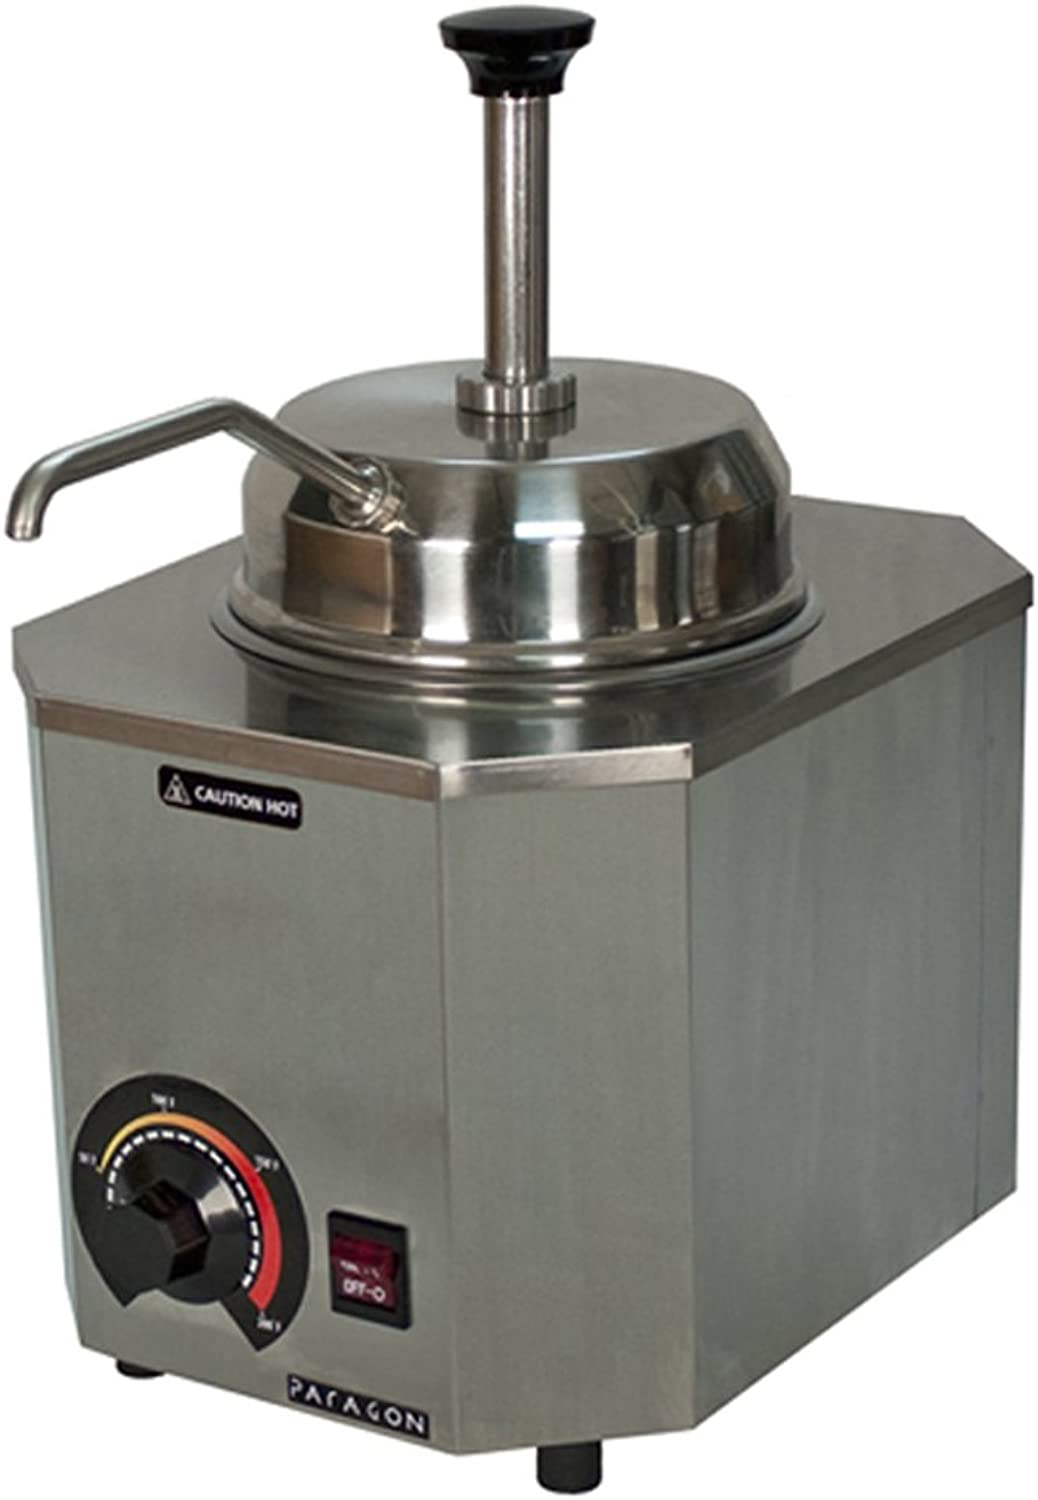 Paragon ProDeluxe No.10 Pump Unit Can Warmer